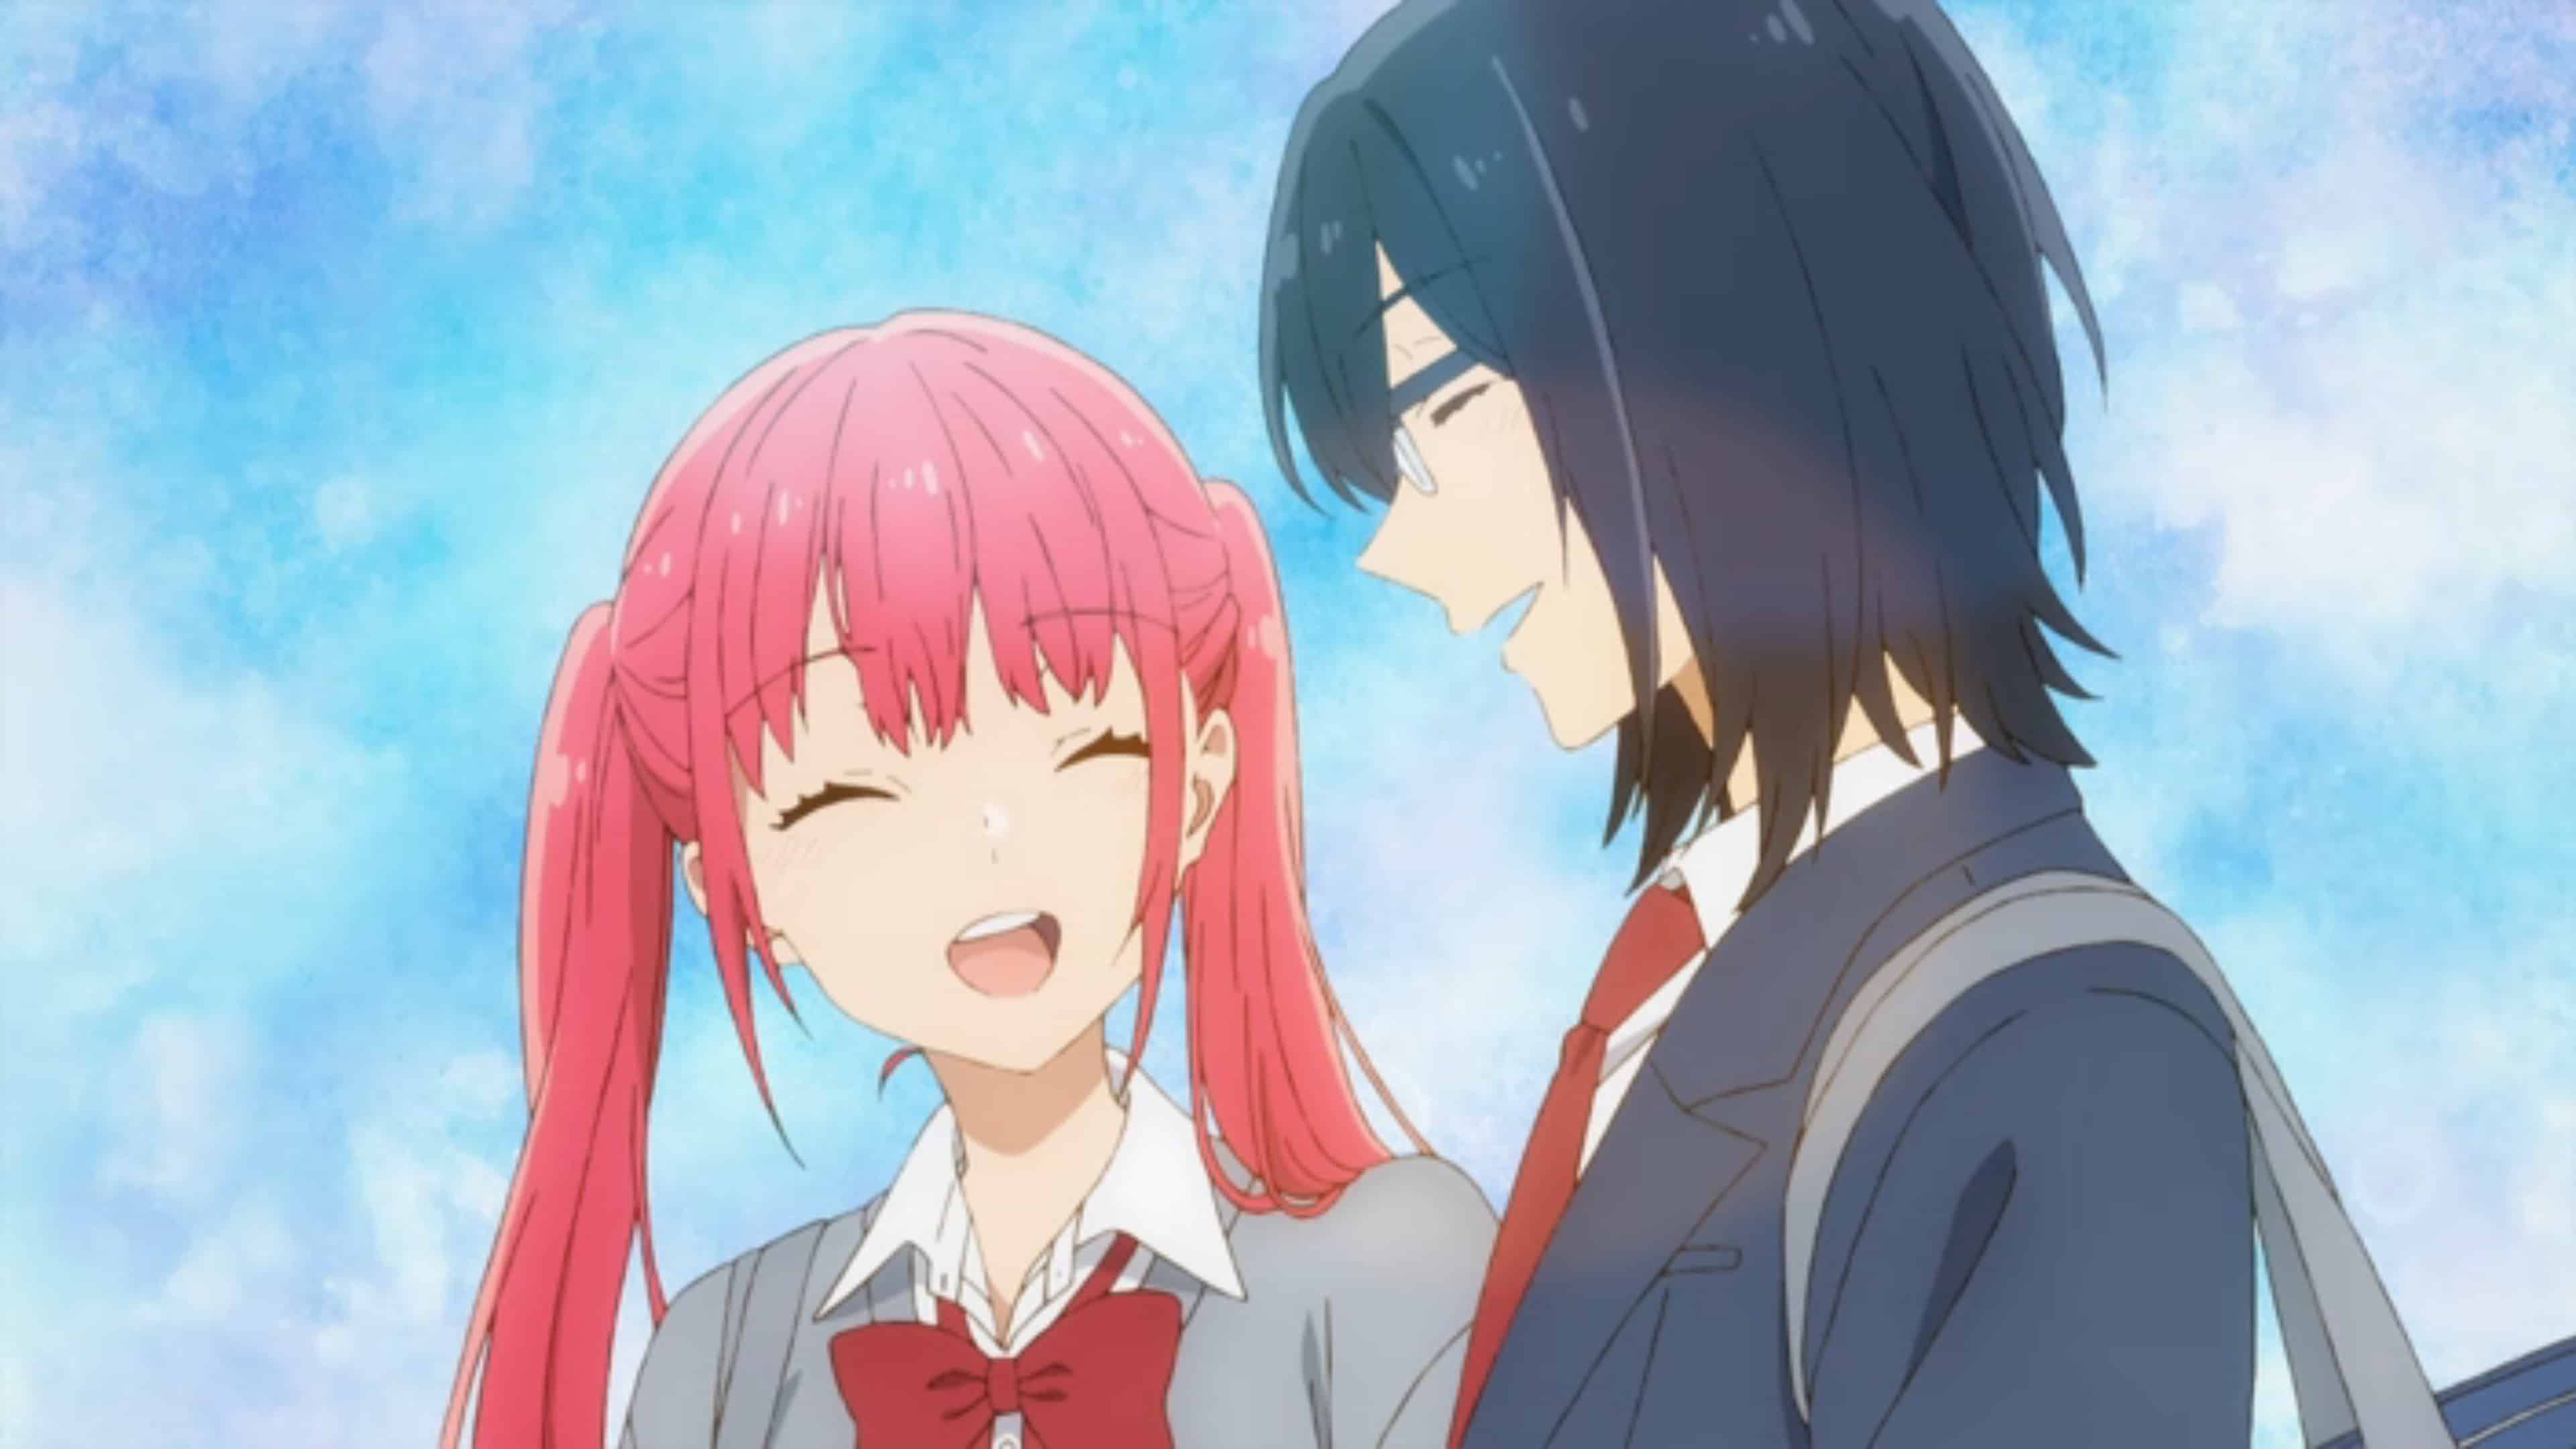 Remi and Miyamura laughing together